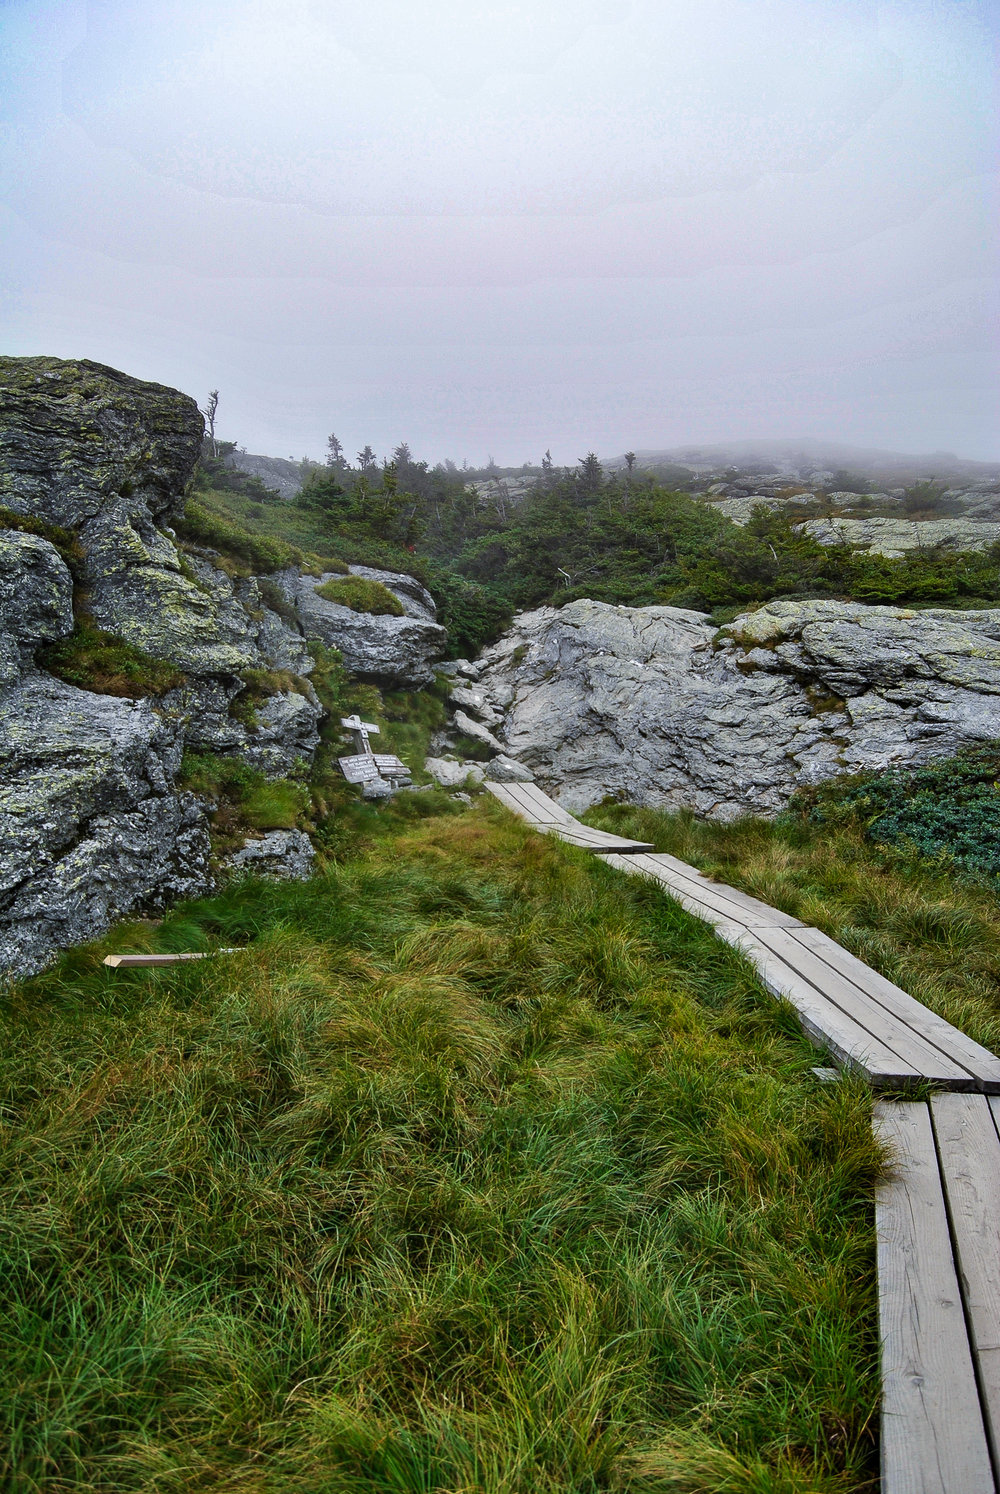 Staying on the trail (wooden planks) is important in zones of Alpine Tundra.